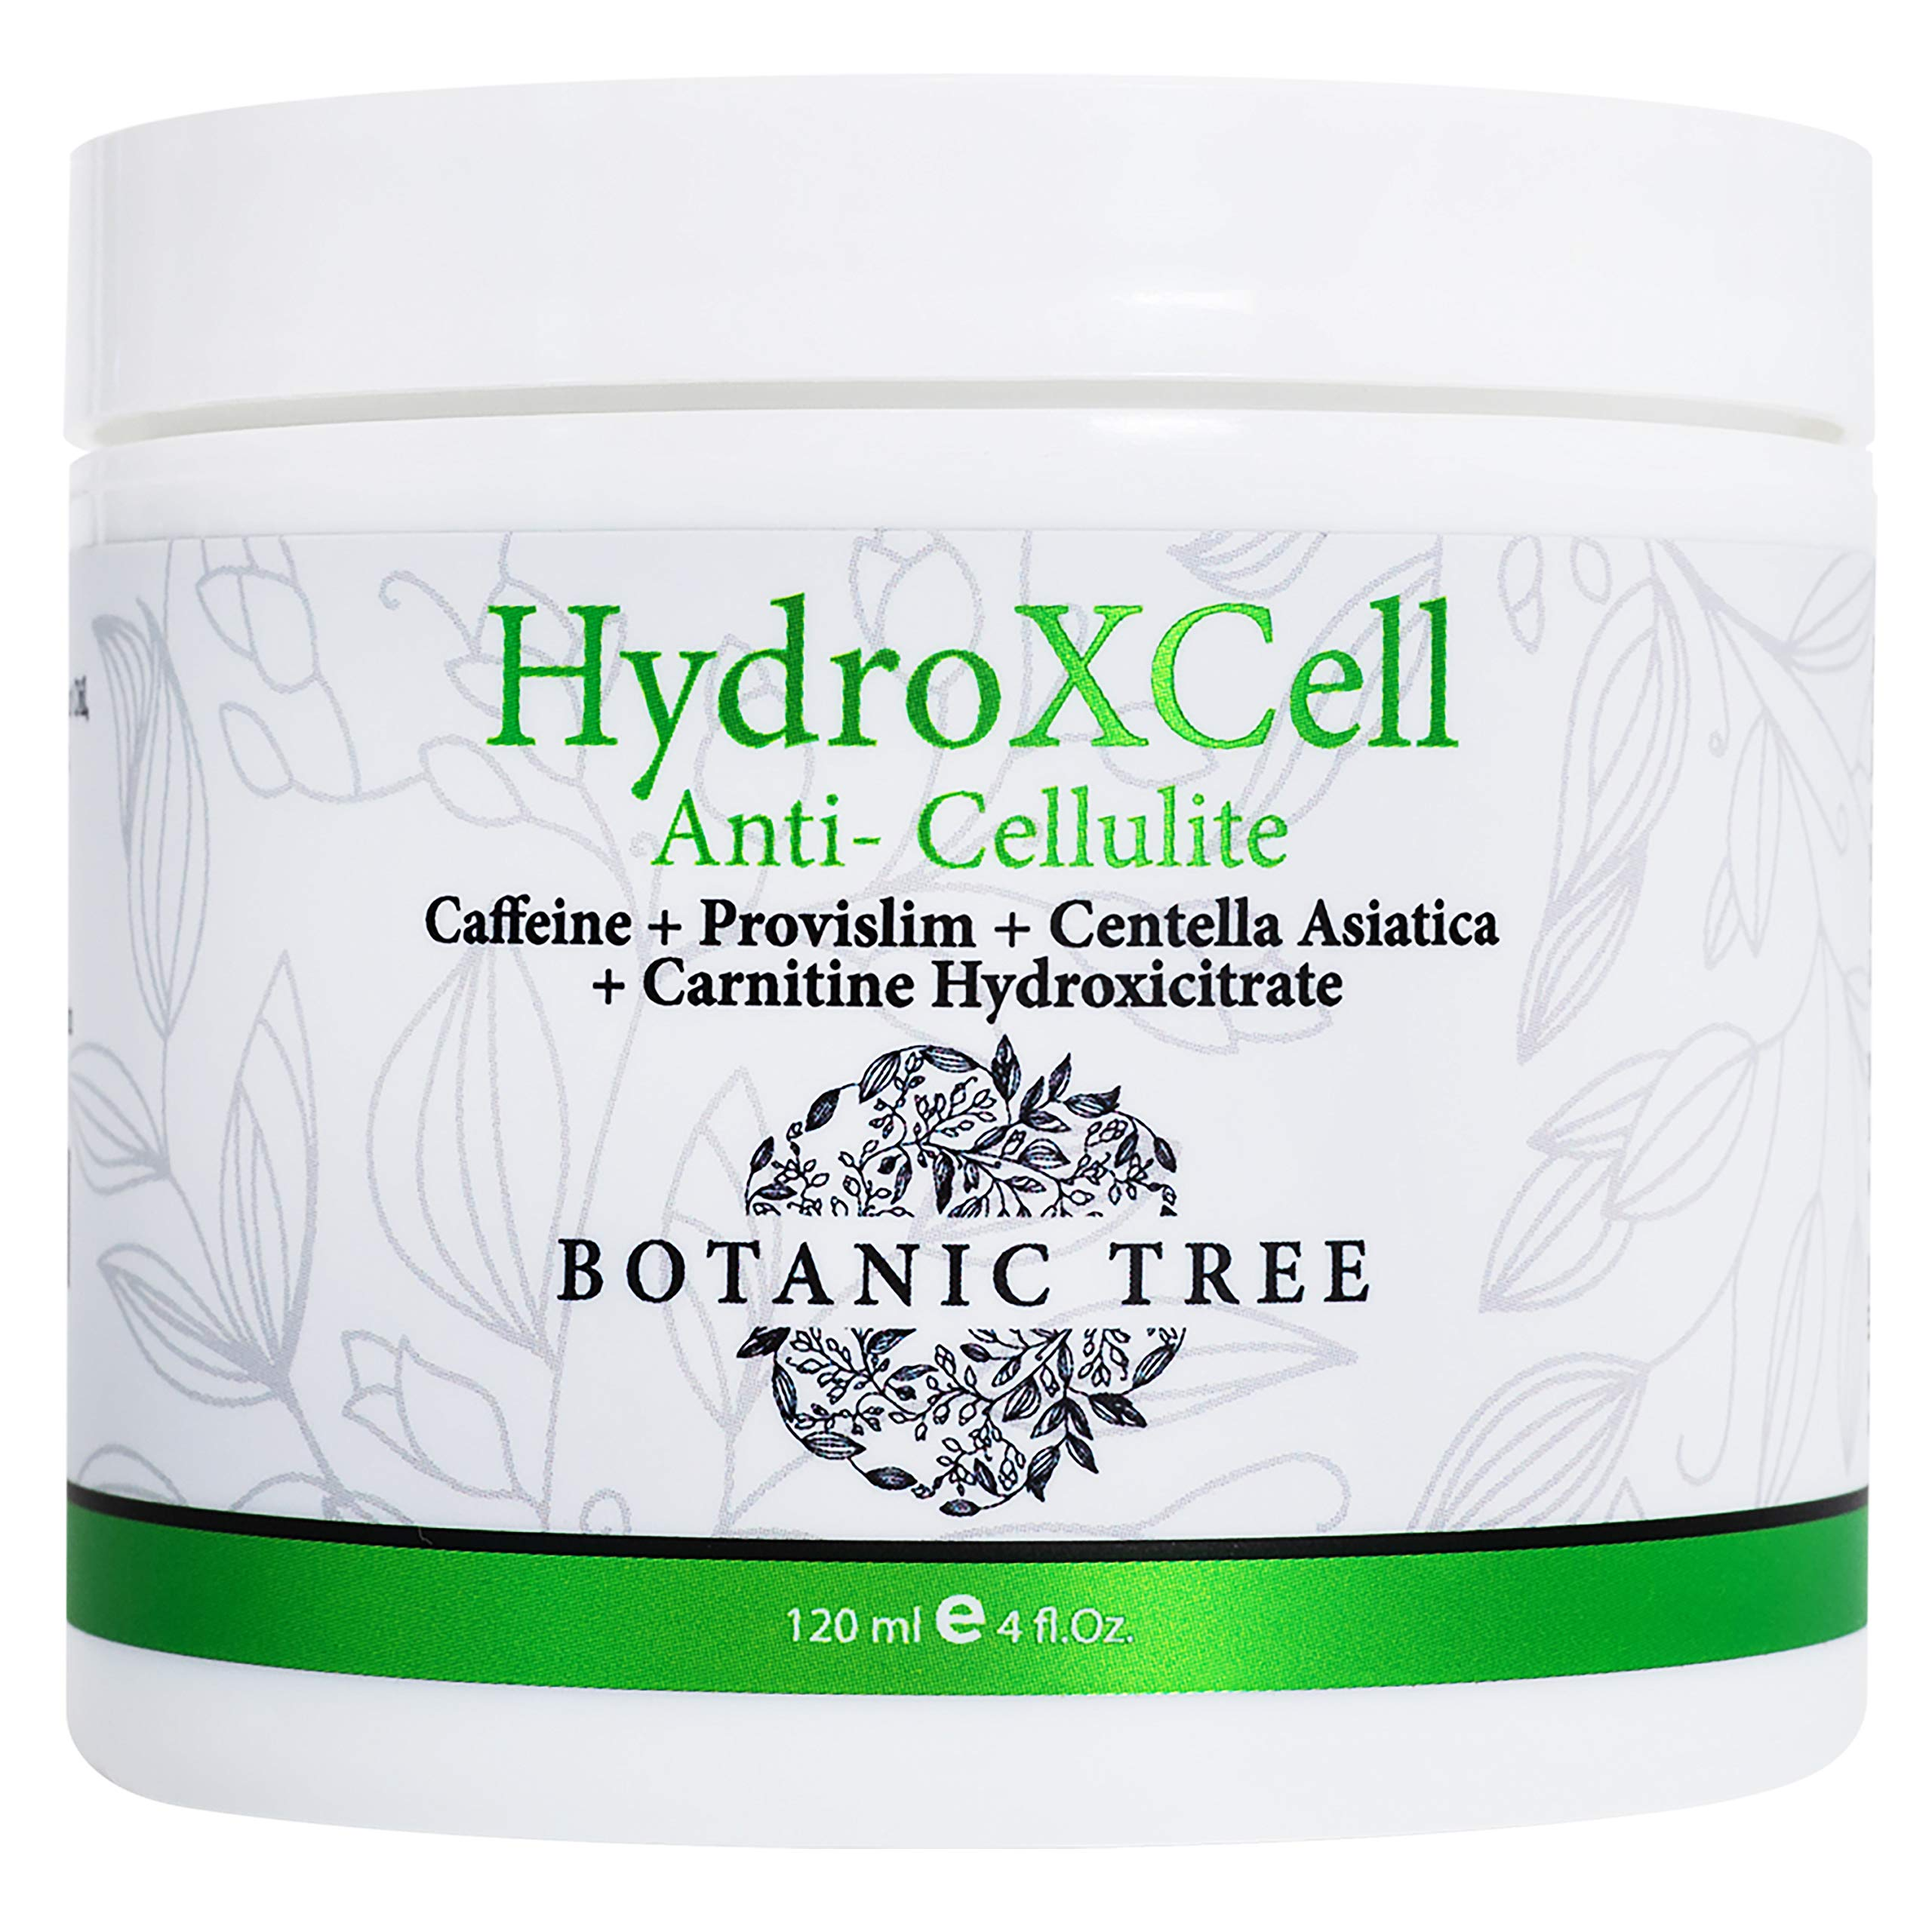 HydroXCell Anti Cellulite Cream Botanic Tree-Decrease Cellulite in 92% of Customers After 2 Months-Proven Results-100% Organic Extract-Cellulite Cream Remover w/Caffeine,Centella Asiatica,and Gingko.( Packaging may vary)